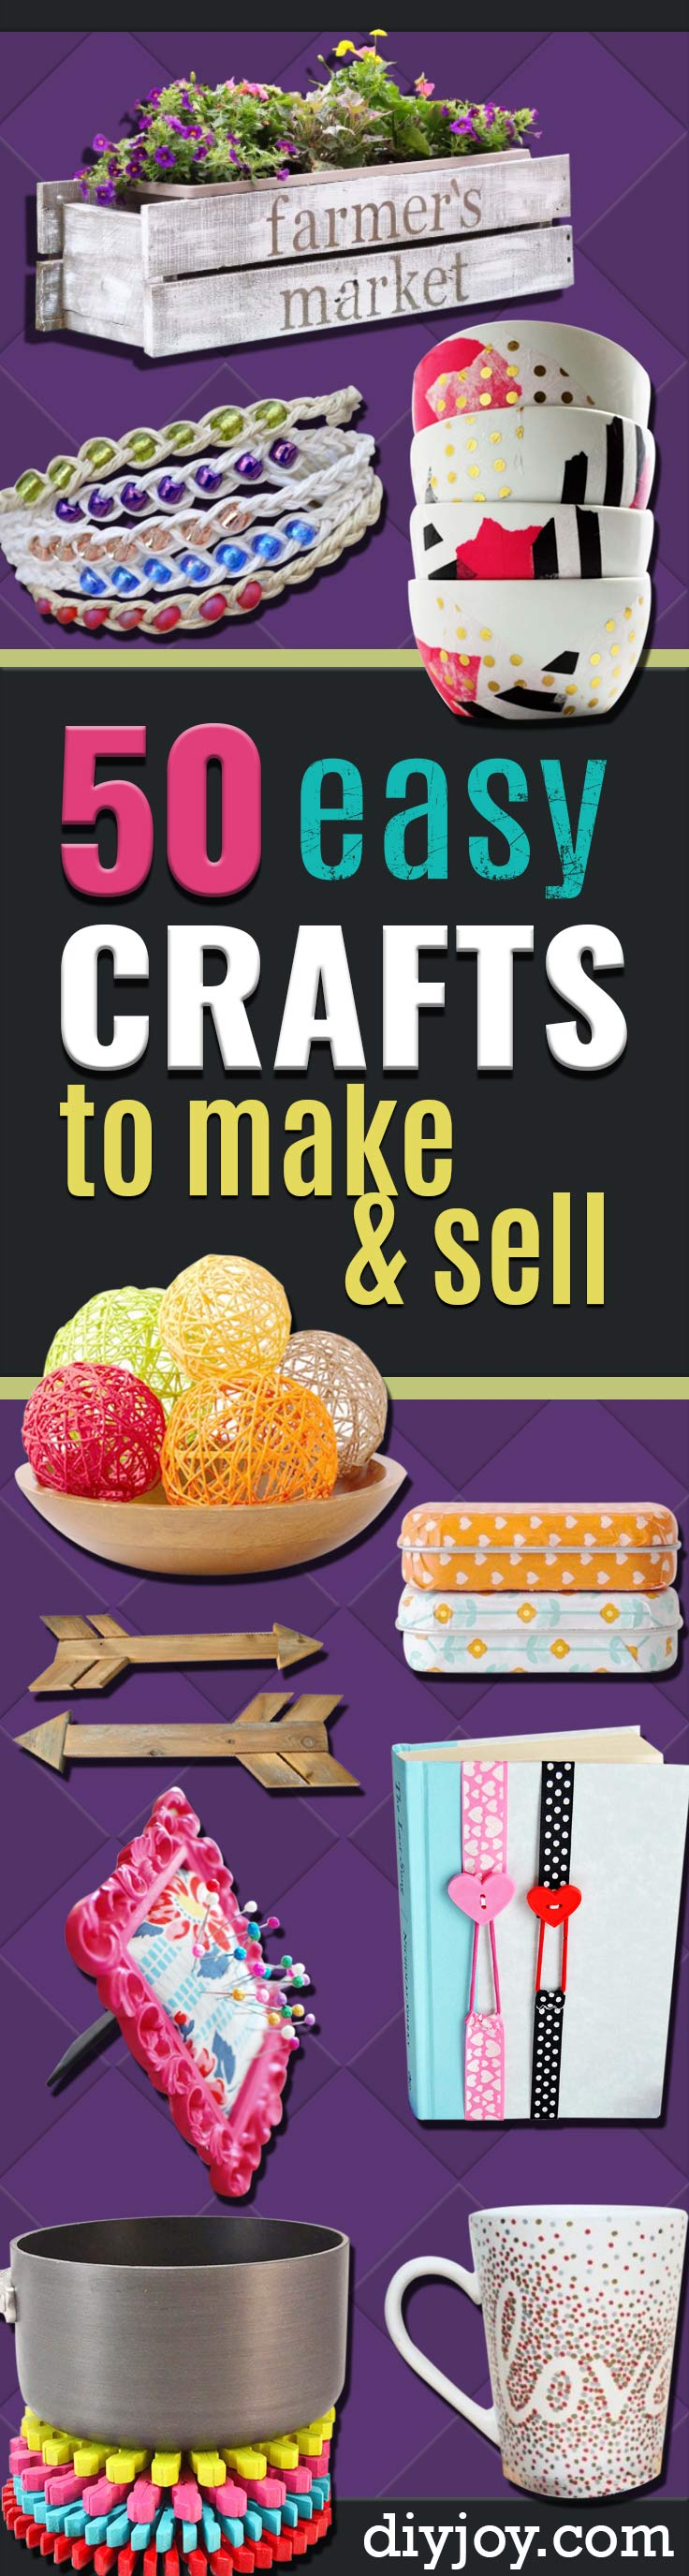 Easy Crafts To Make And Sell Cool Homemade Craft Projects You Can Sell On Etsy